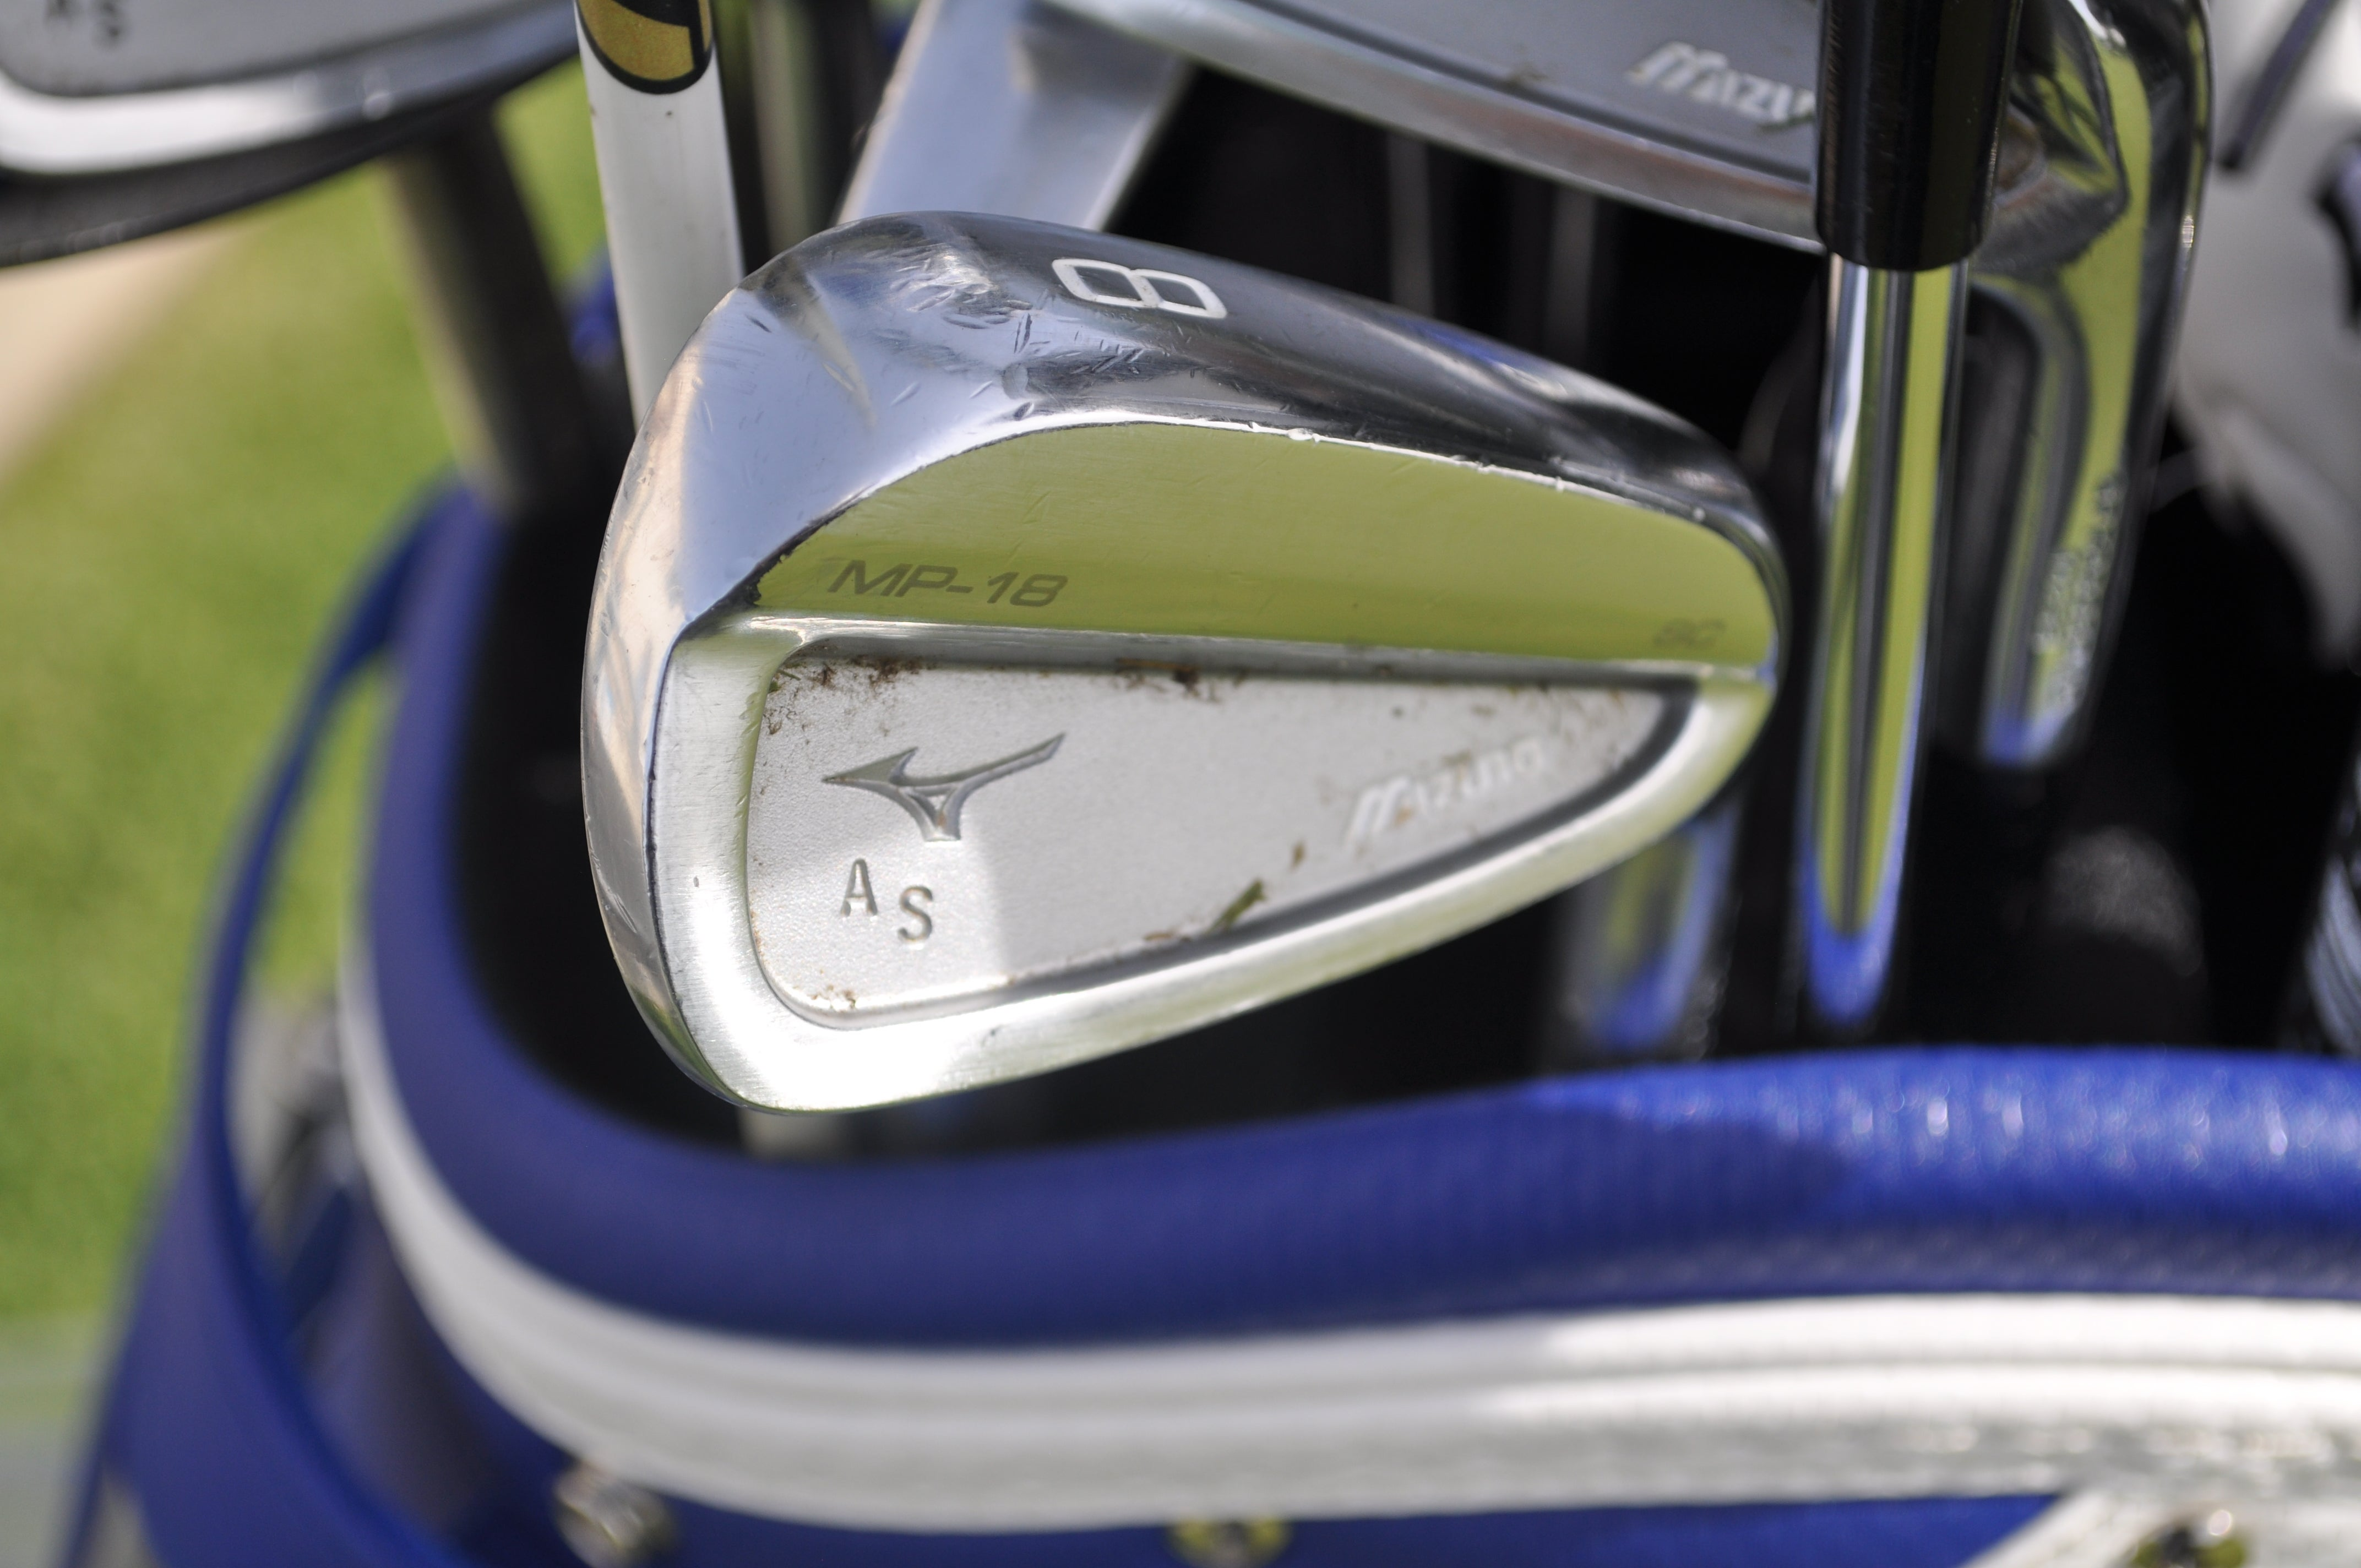 Adam Schenk's Mizuno MP-18 irons have his initials stamped in the cavity.